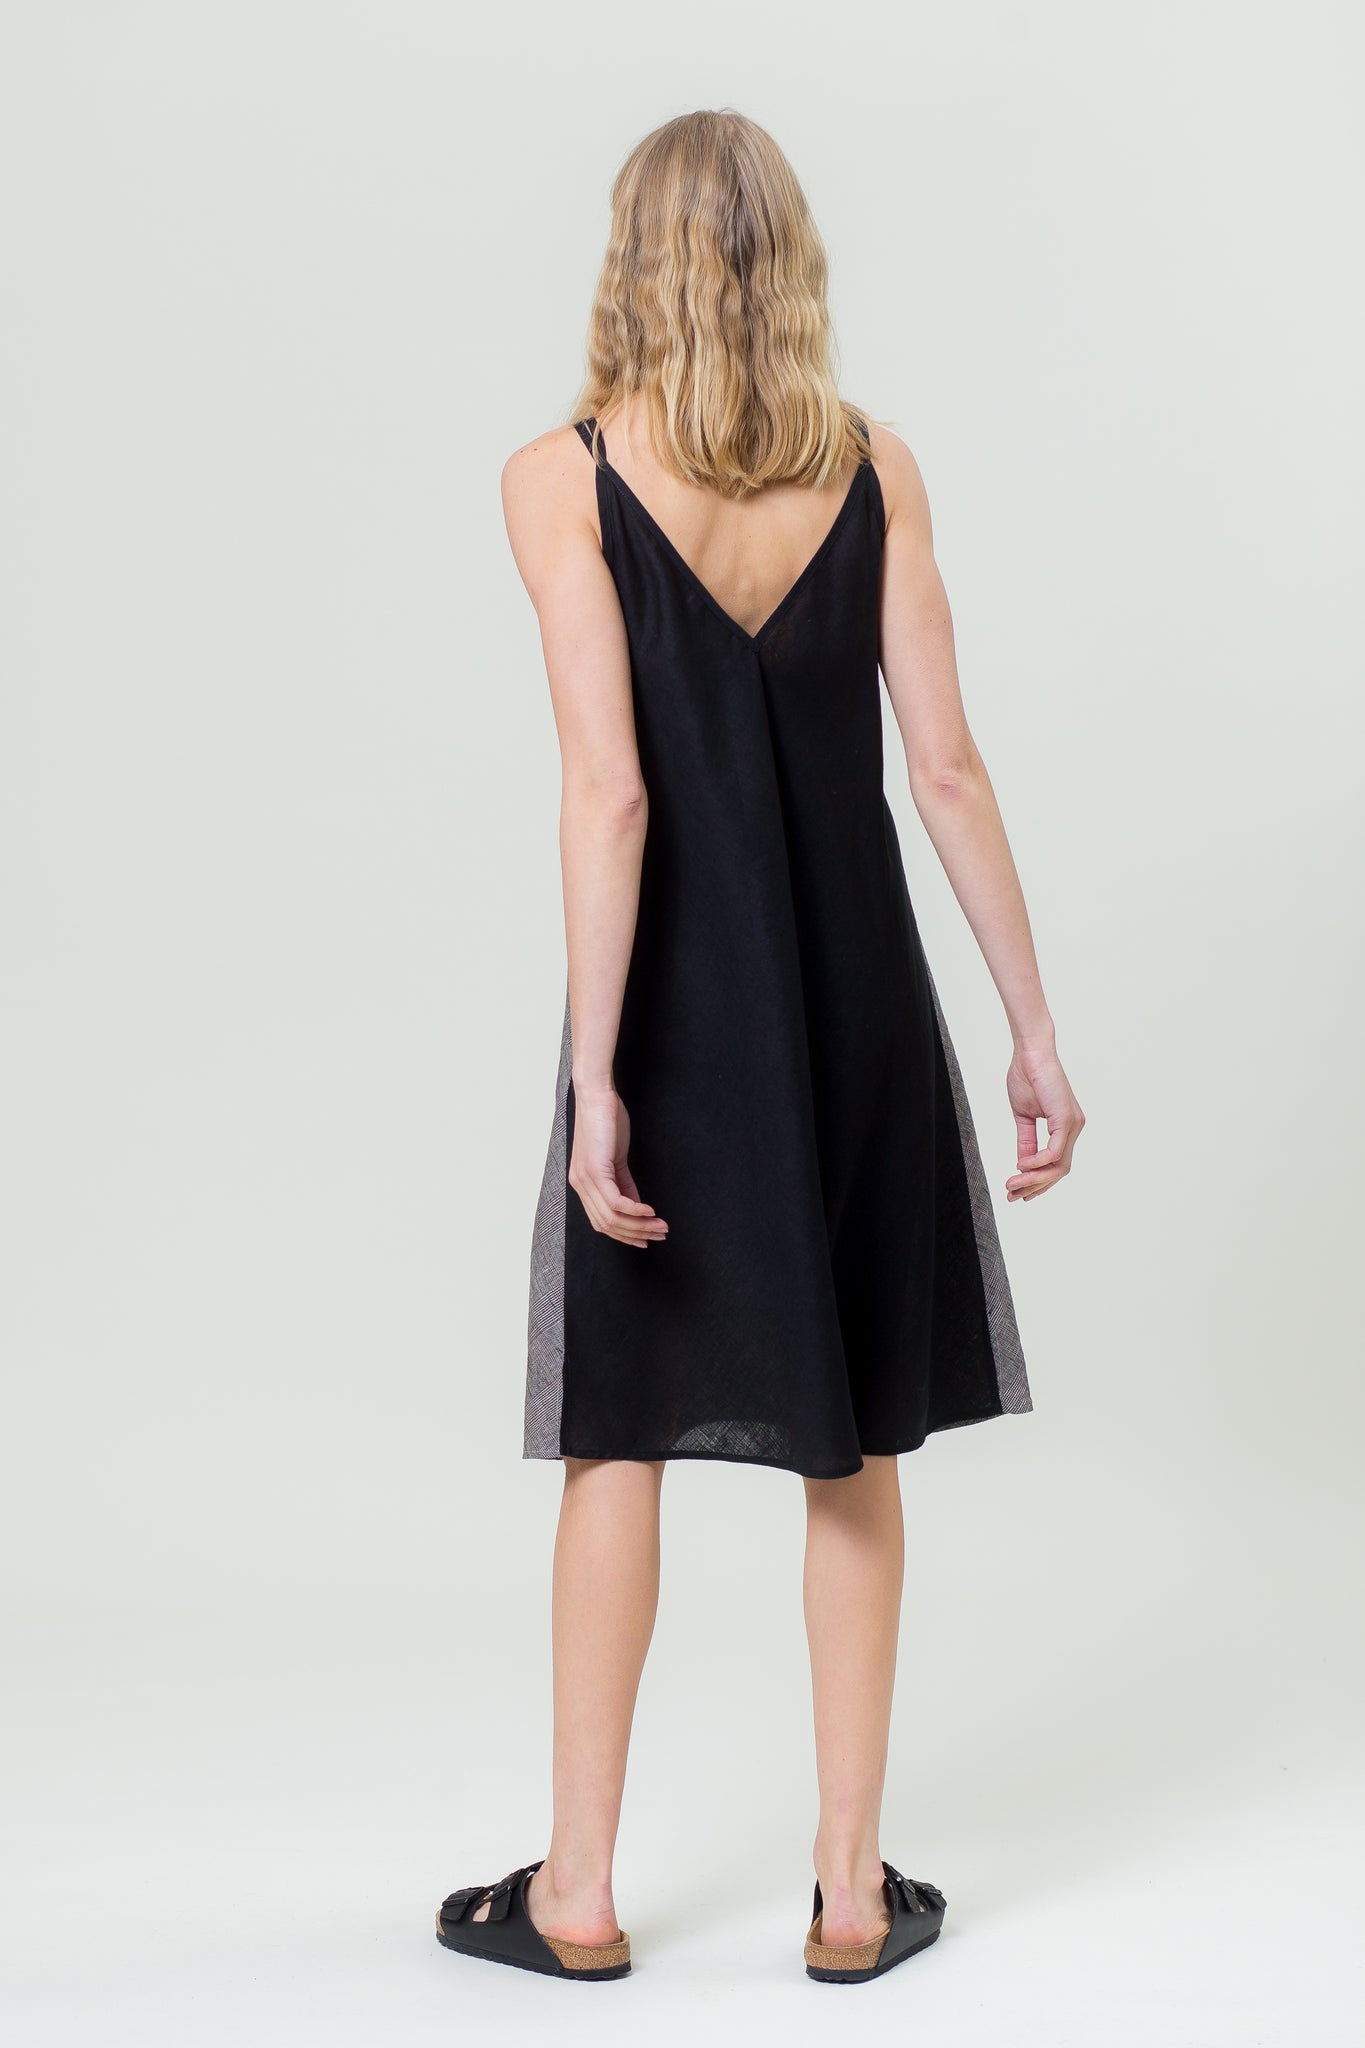 Linen Dress SIMA grey and black